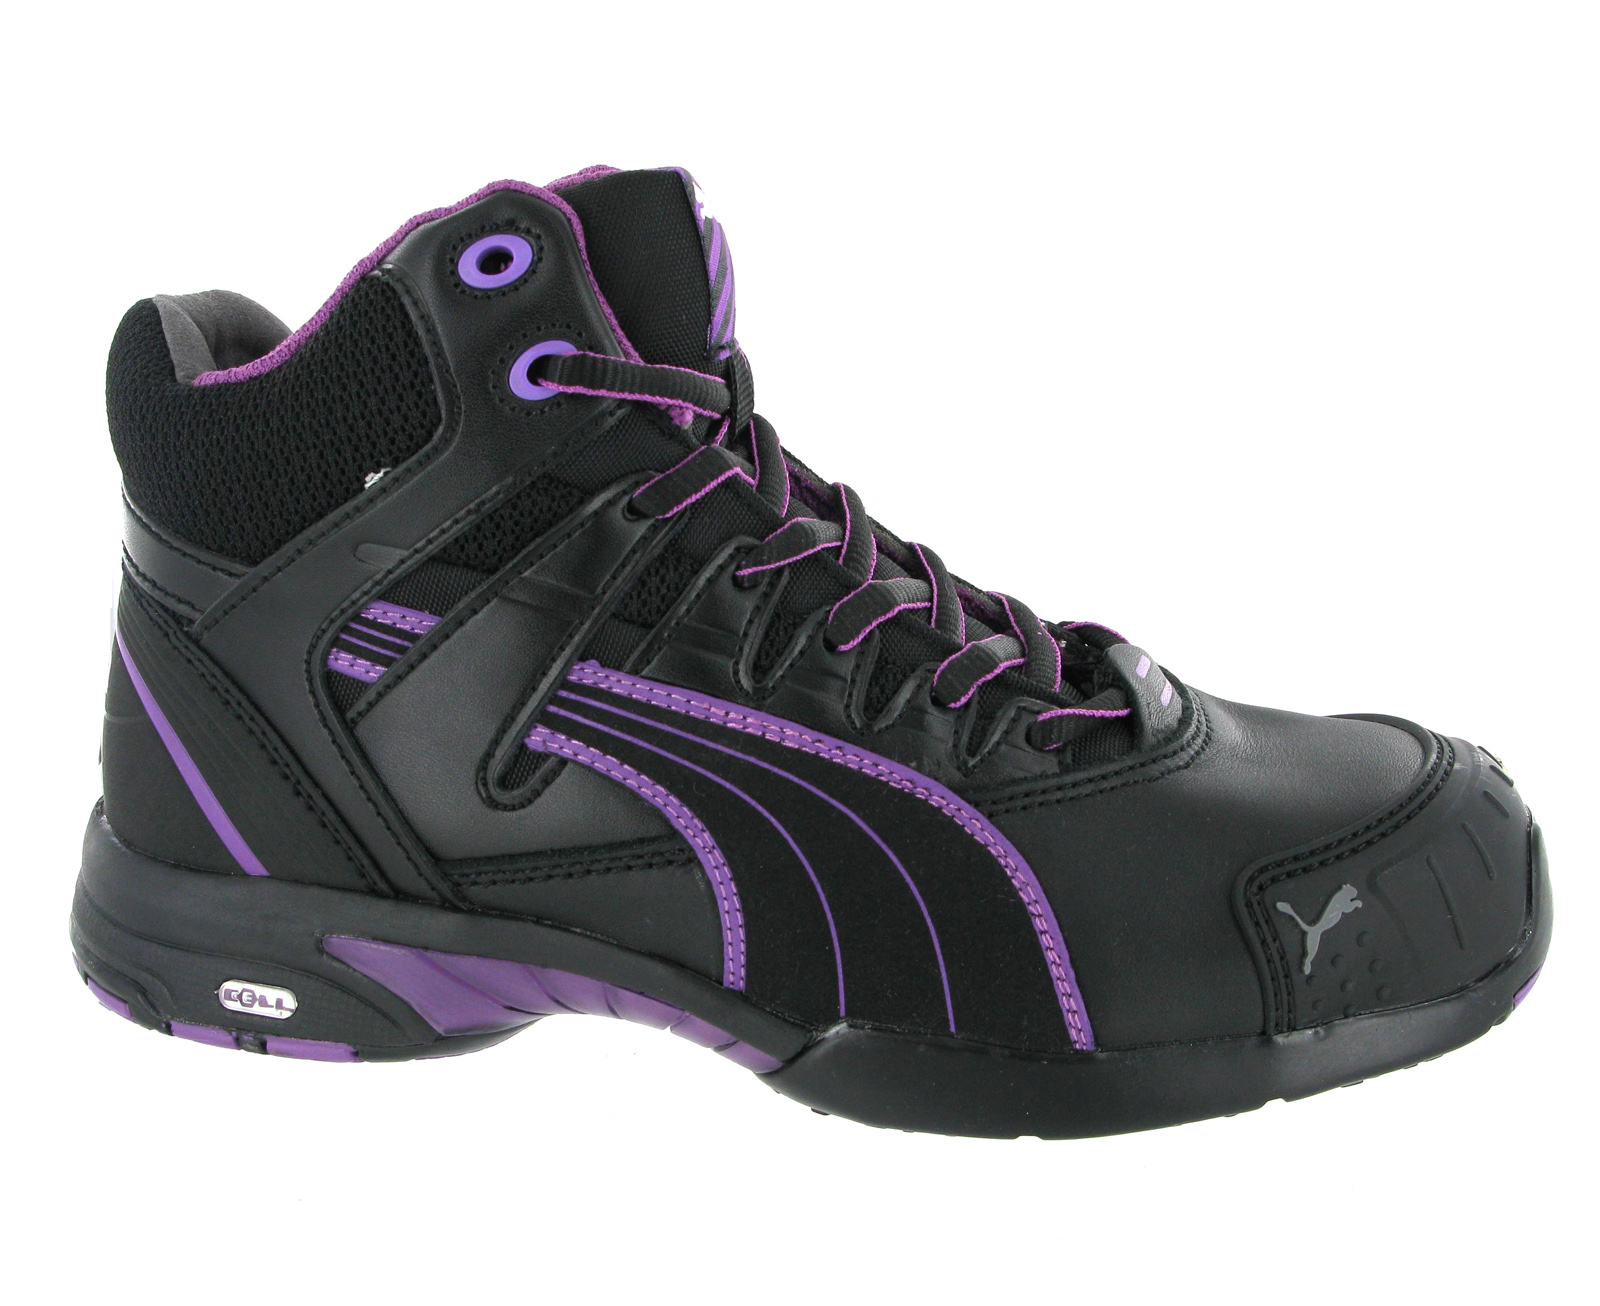 New Womens Puma Stepper S3 Black Leather Water Resistant ...